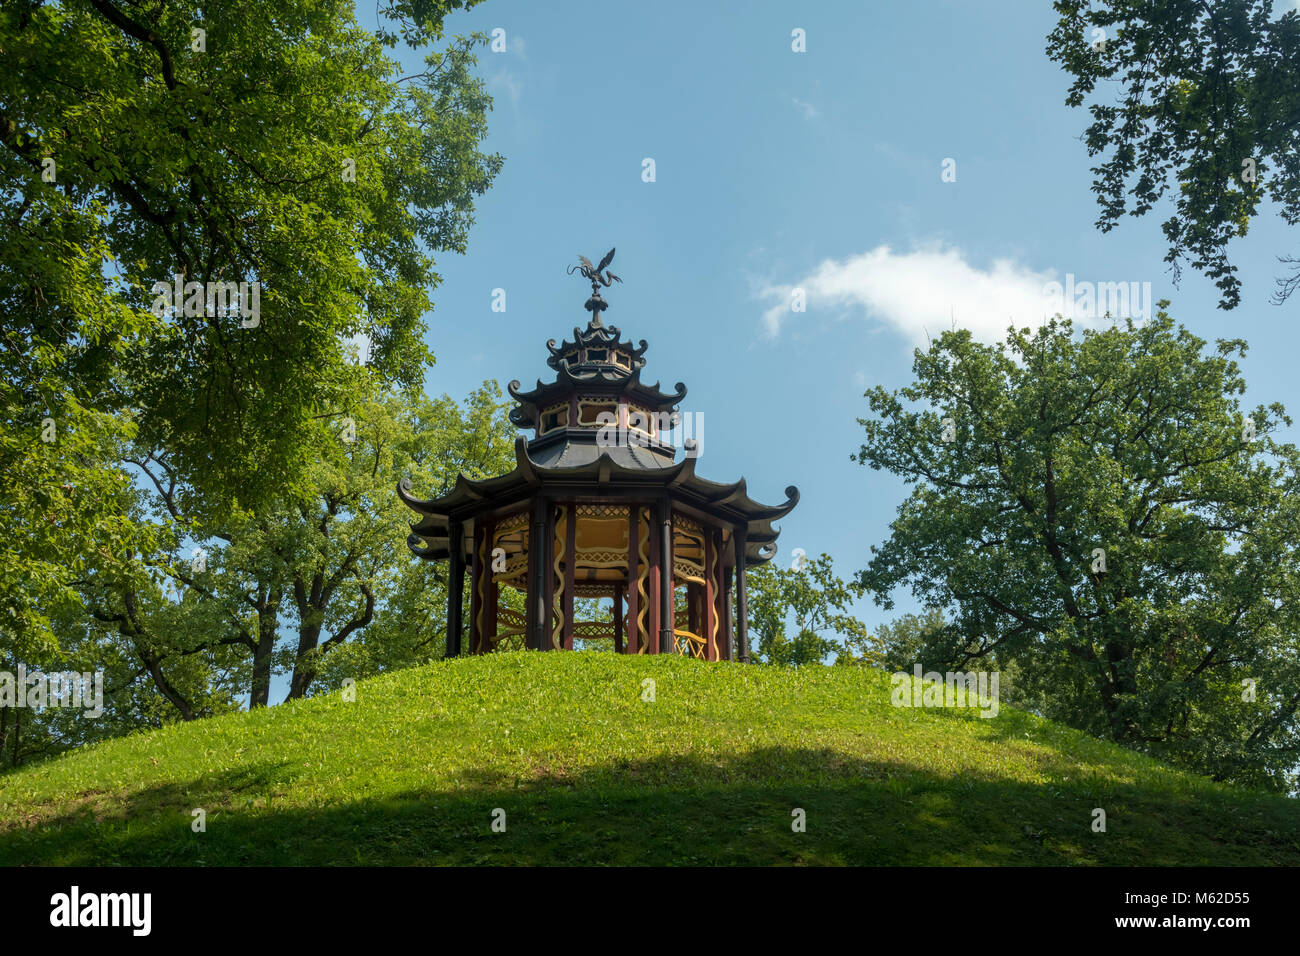 wooden pagoda on the Schneckenberg, The Hermitage (Eremitage), Bayreuth, a historic park dating back to 1715. - Stock Image